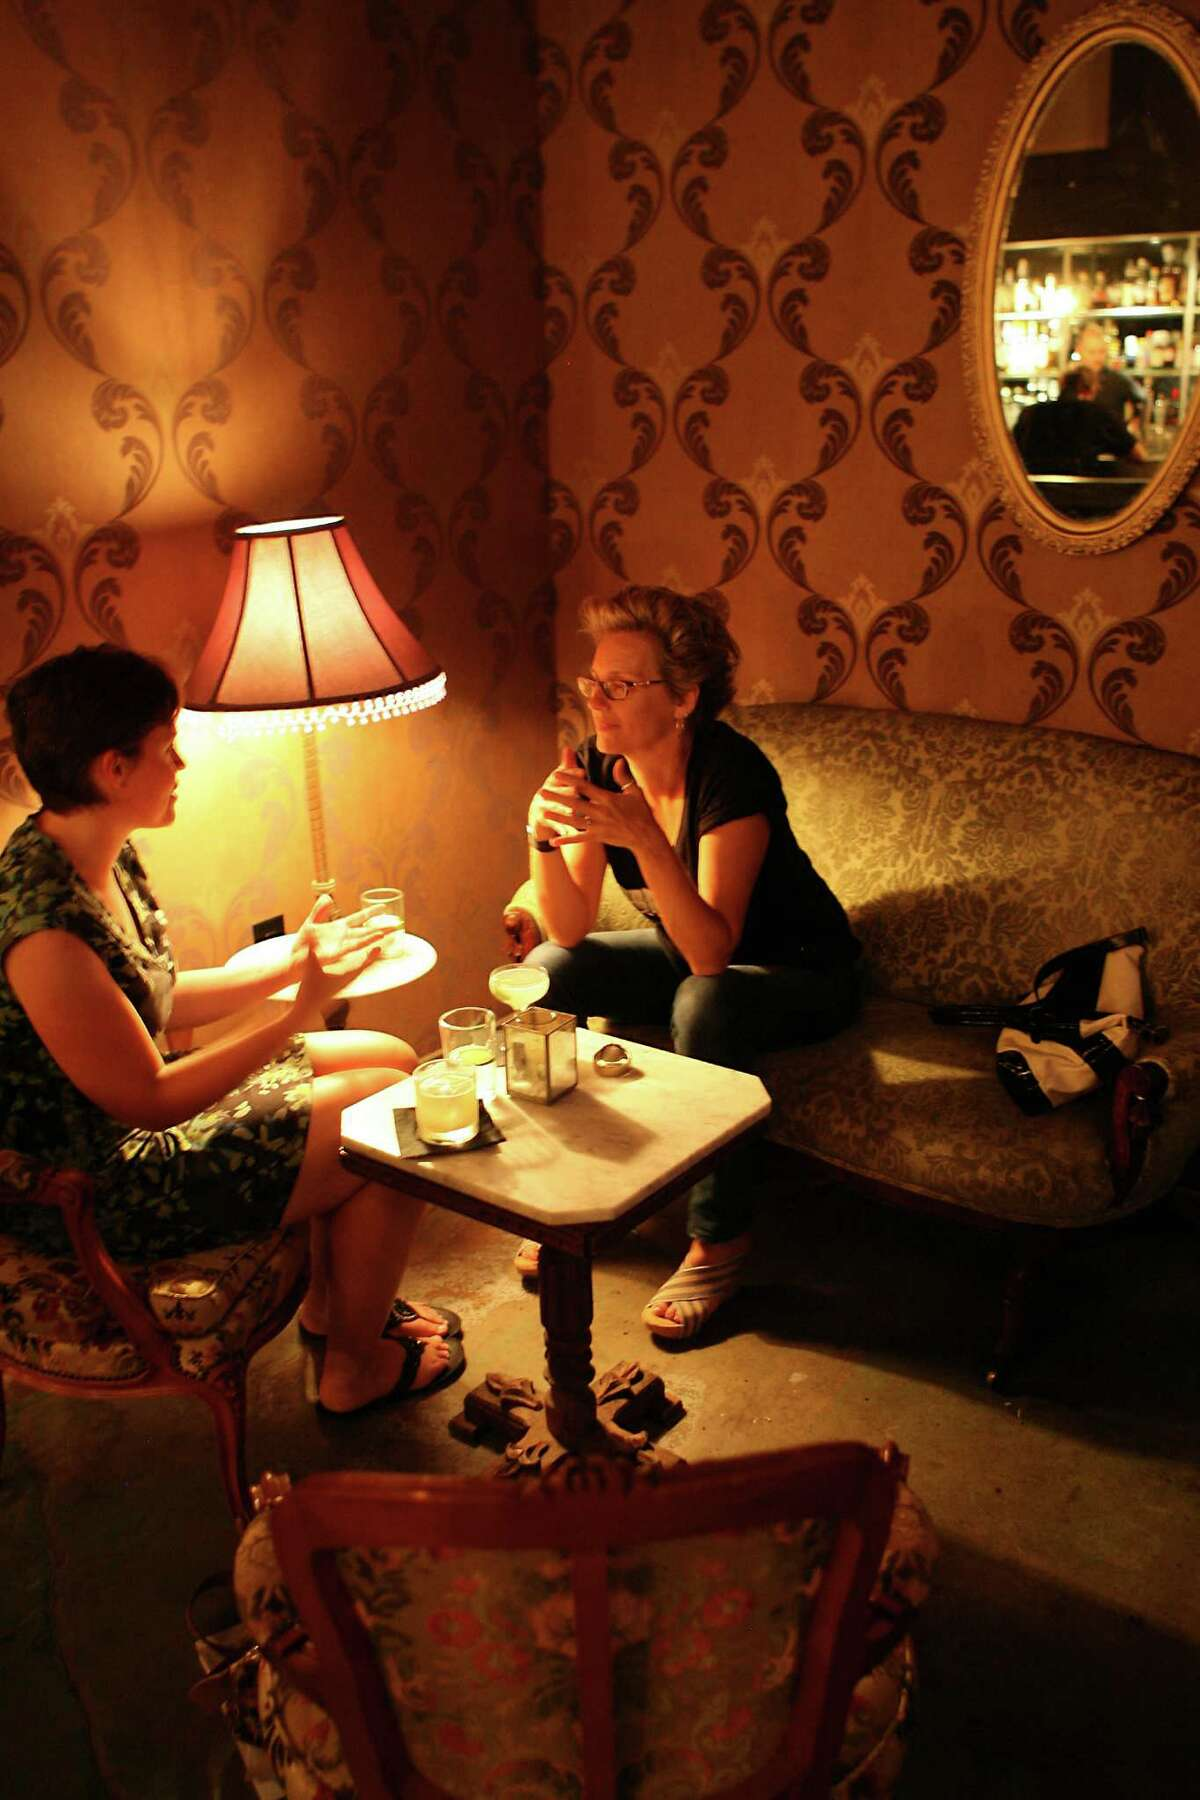 Chrissy Breit (left) and Christine Drennon talk inside The Brooklynite. The Brooklynite is located at 516 Brooklyn Ave.